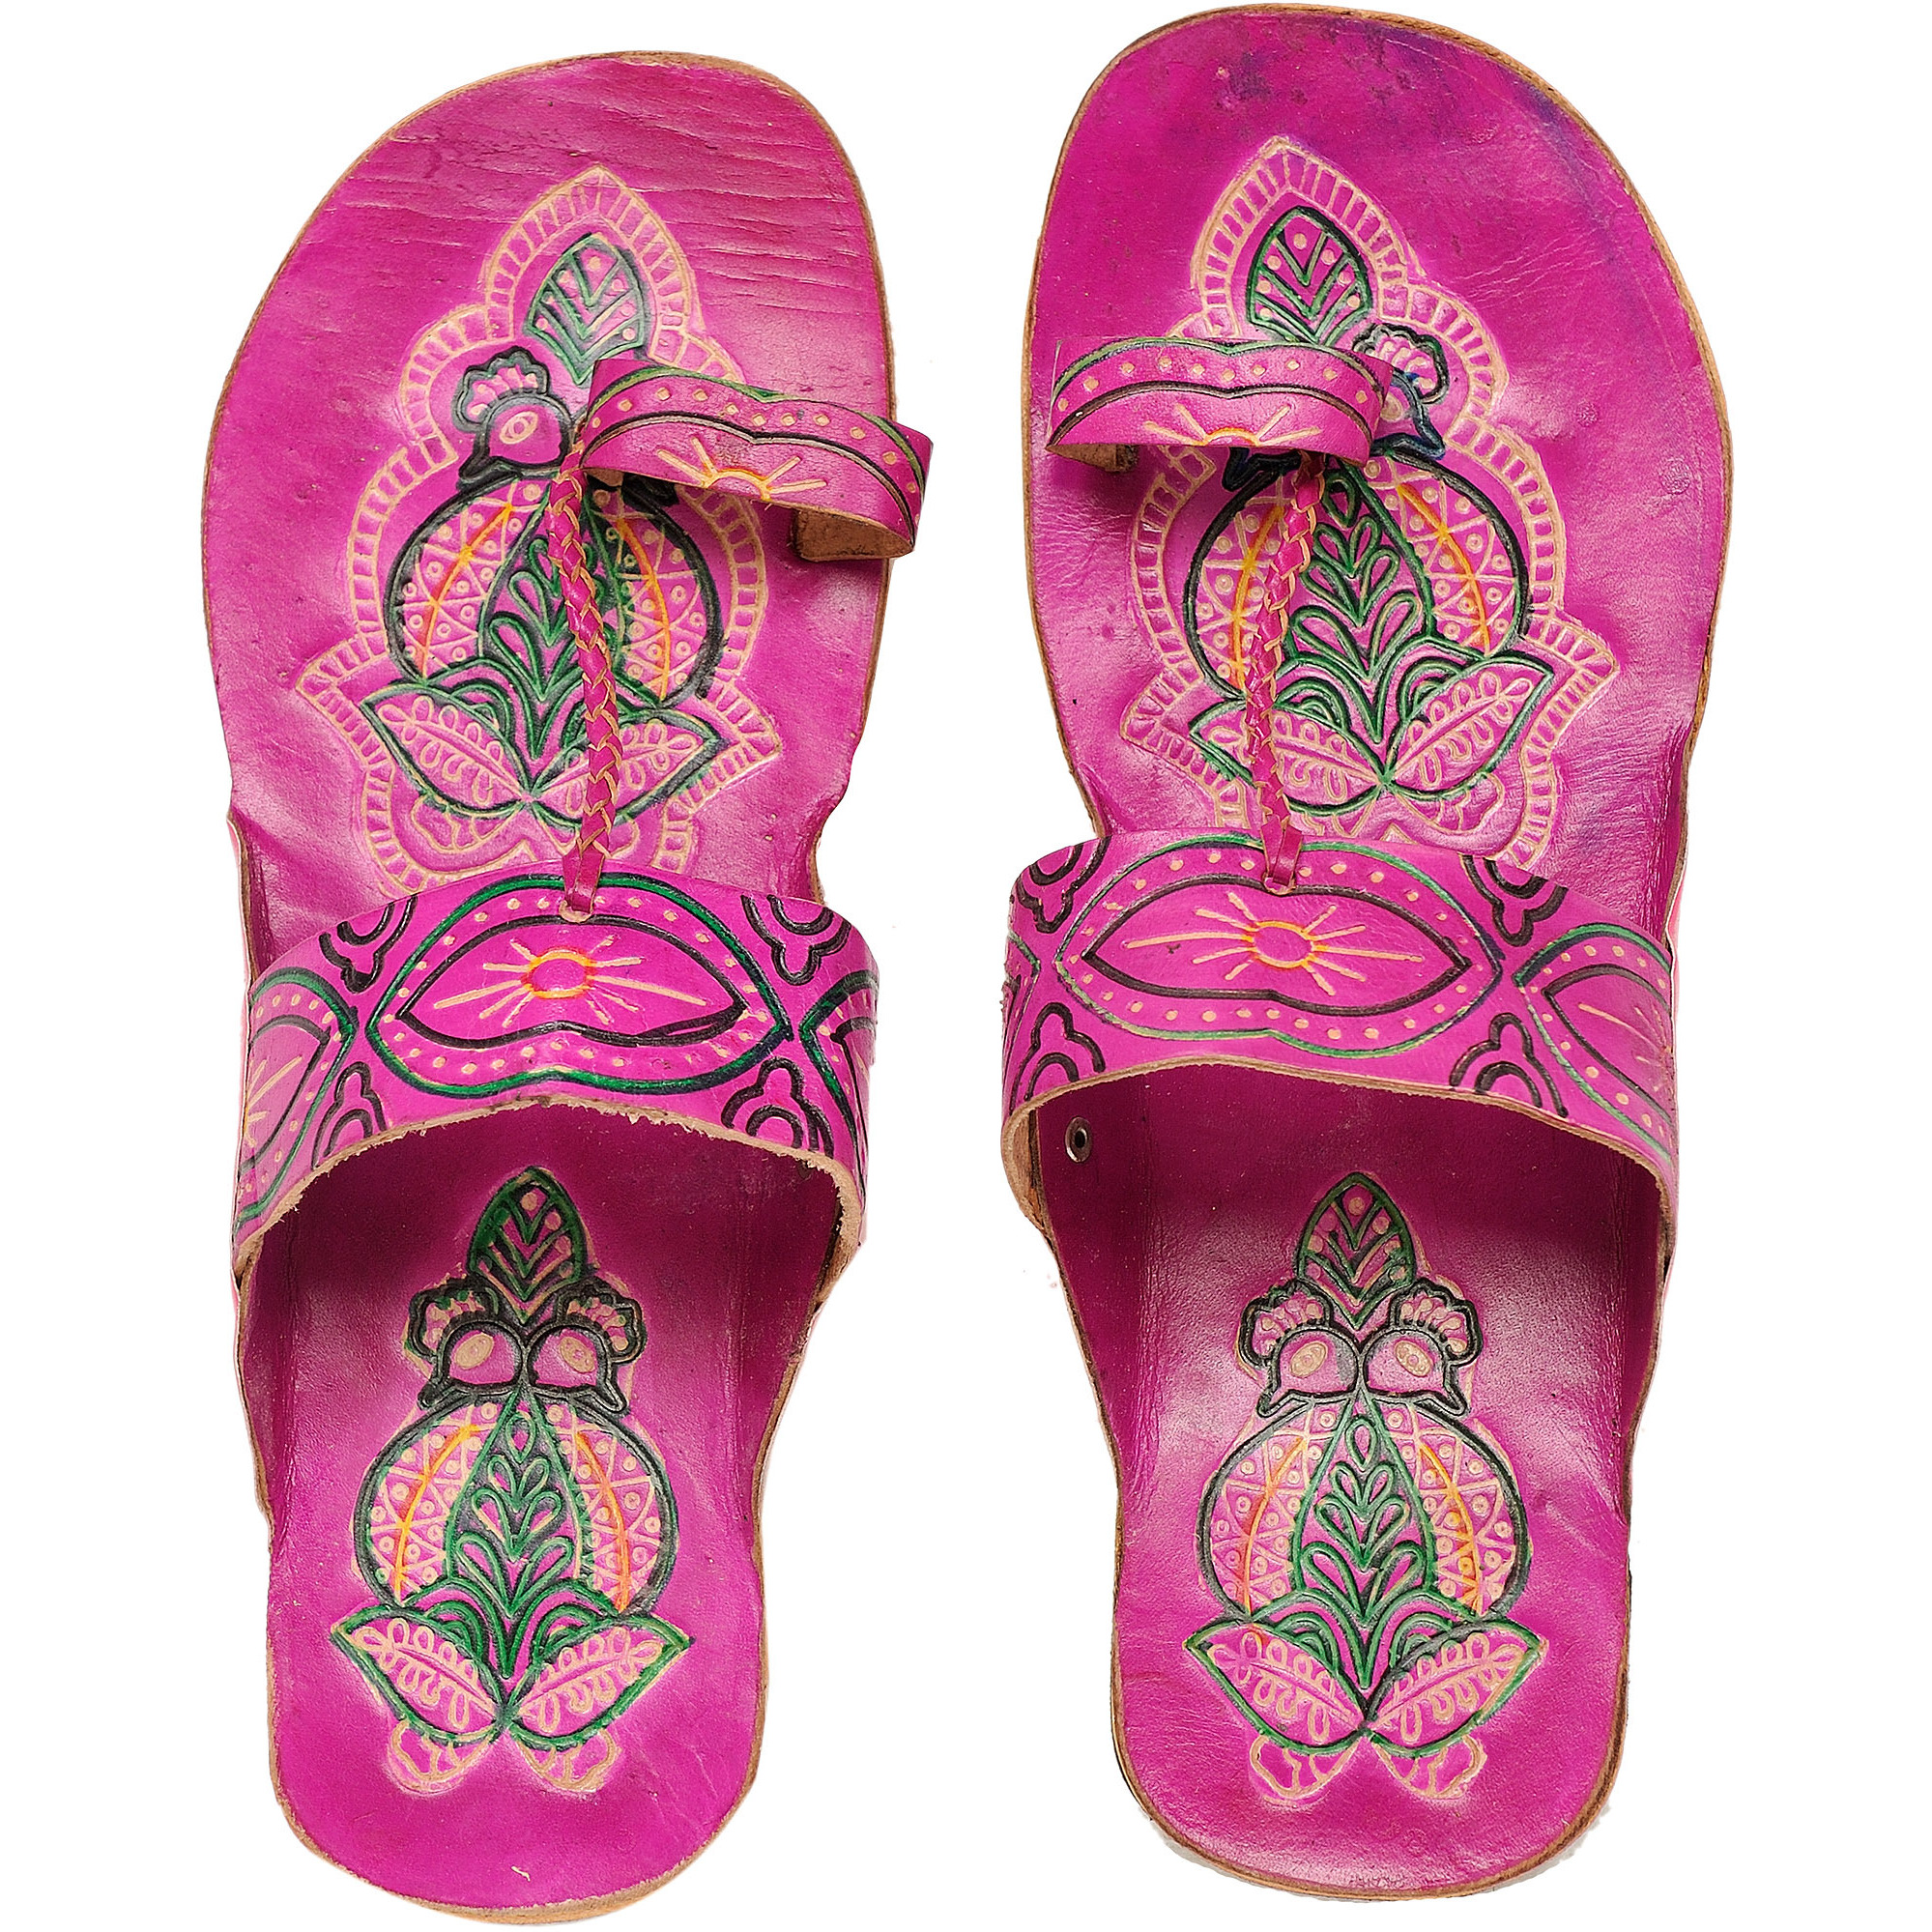 Shantiniketan Slippers with Painted Peacocks